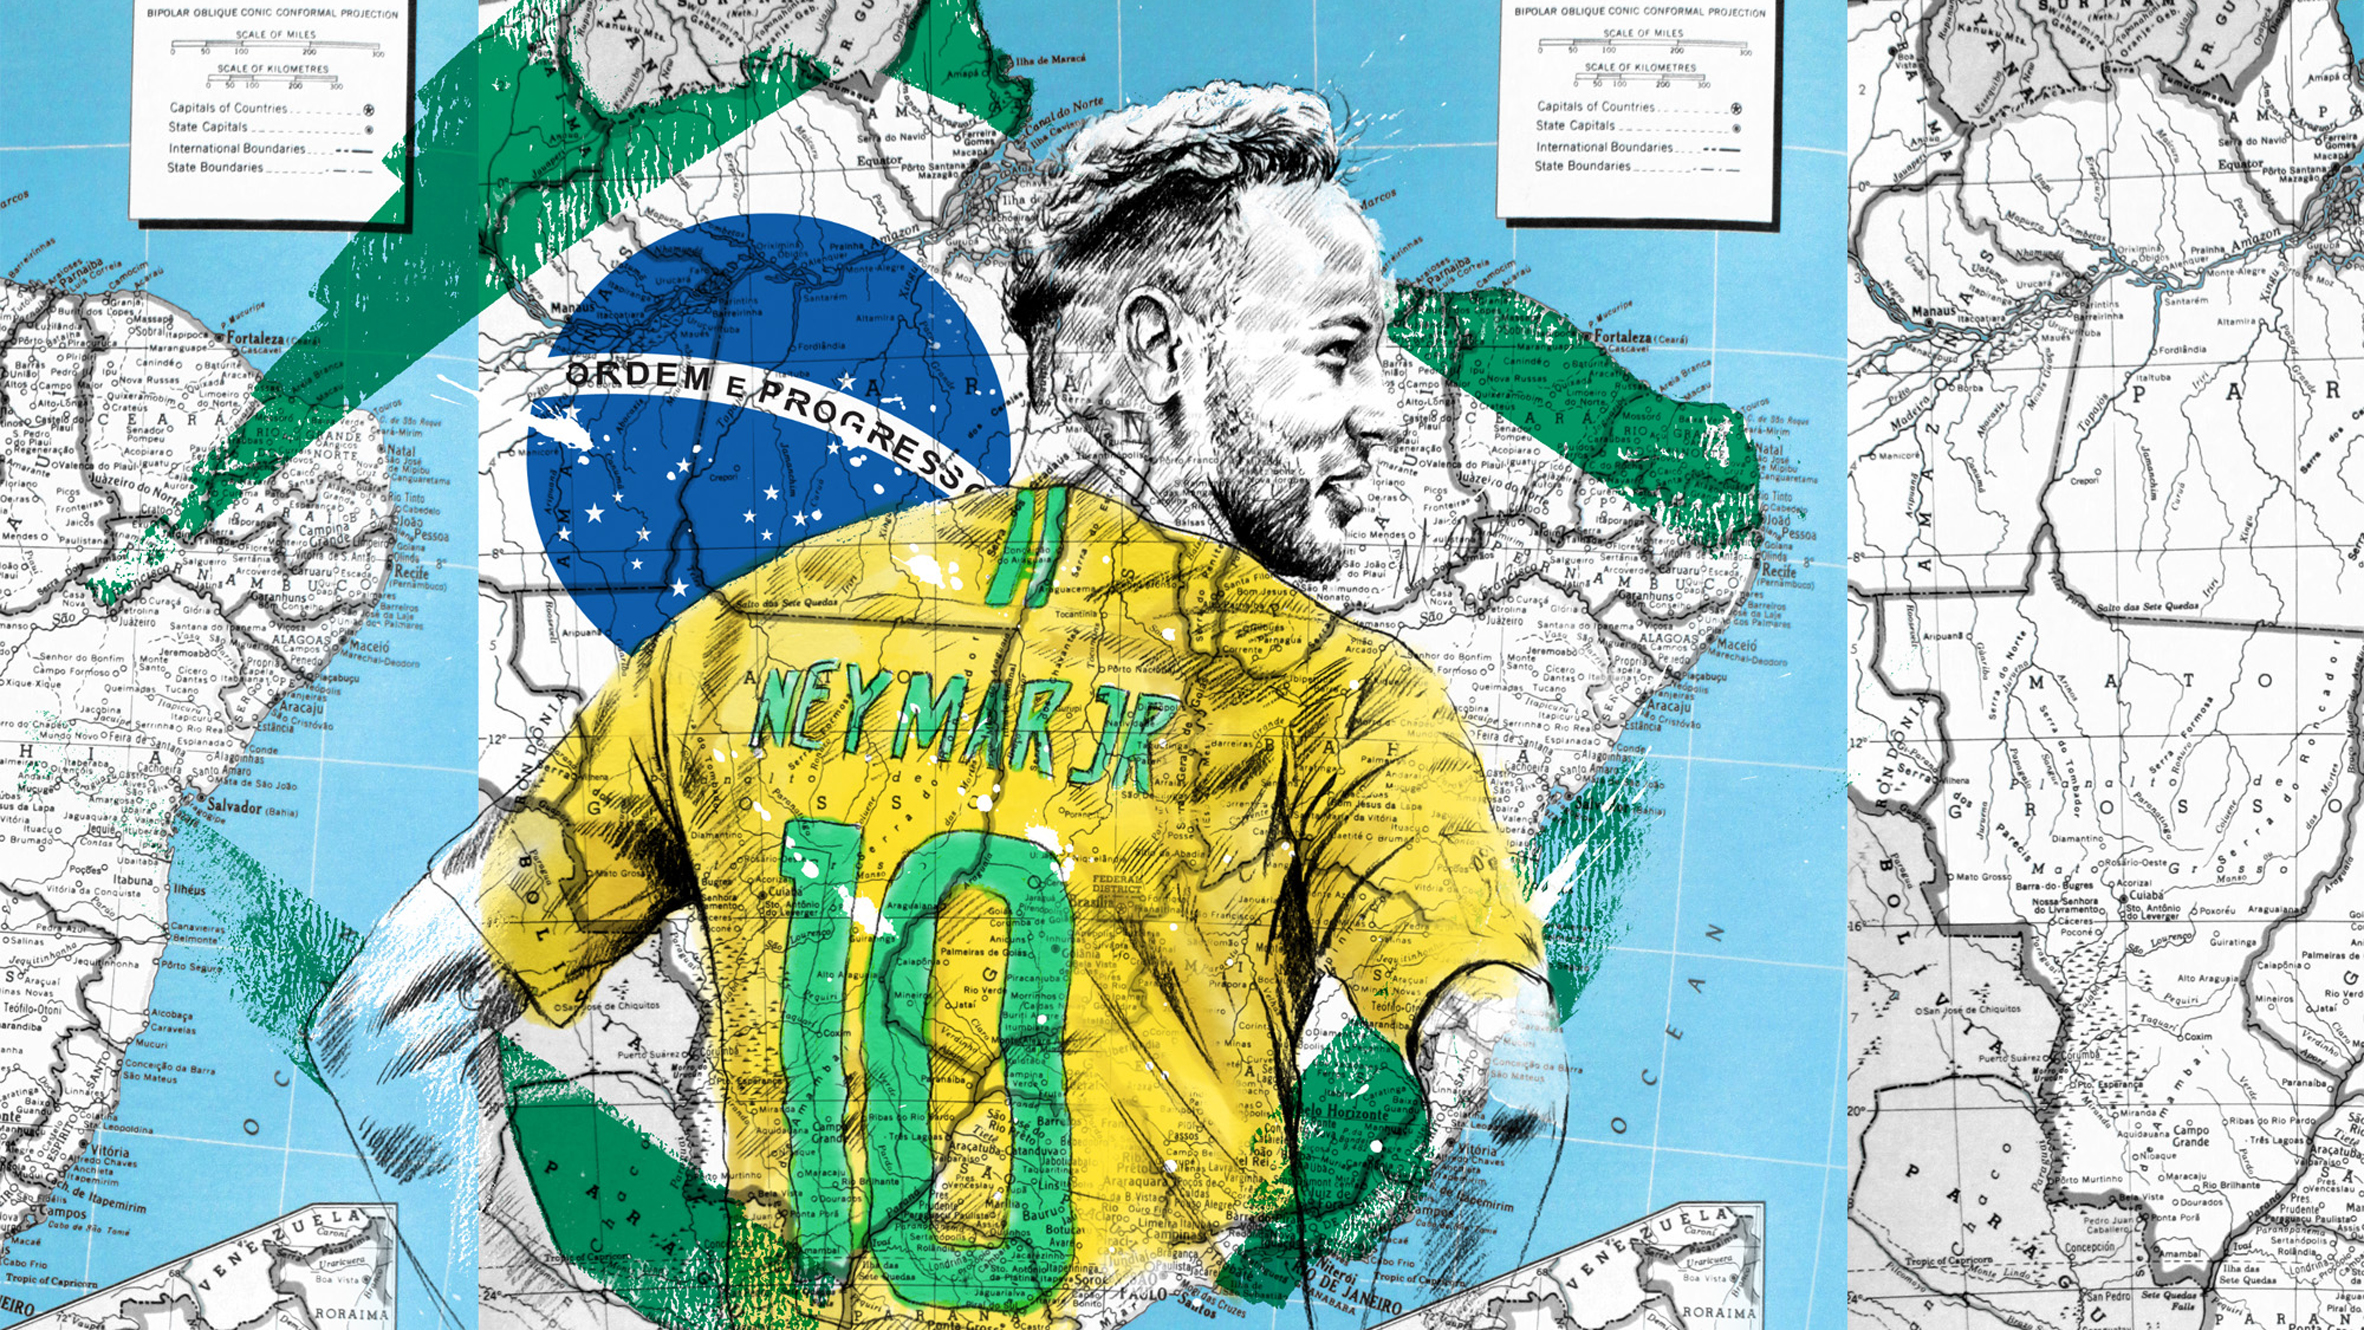 world-cup-illustrations-round-up-design_hero.jpg